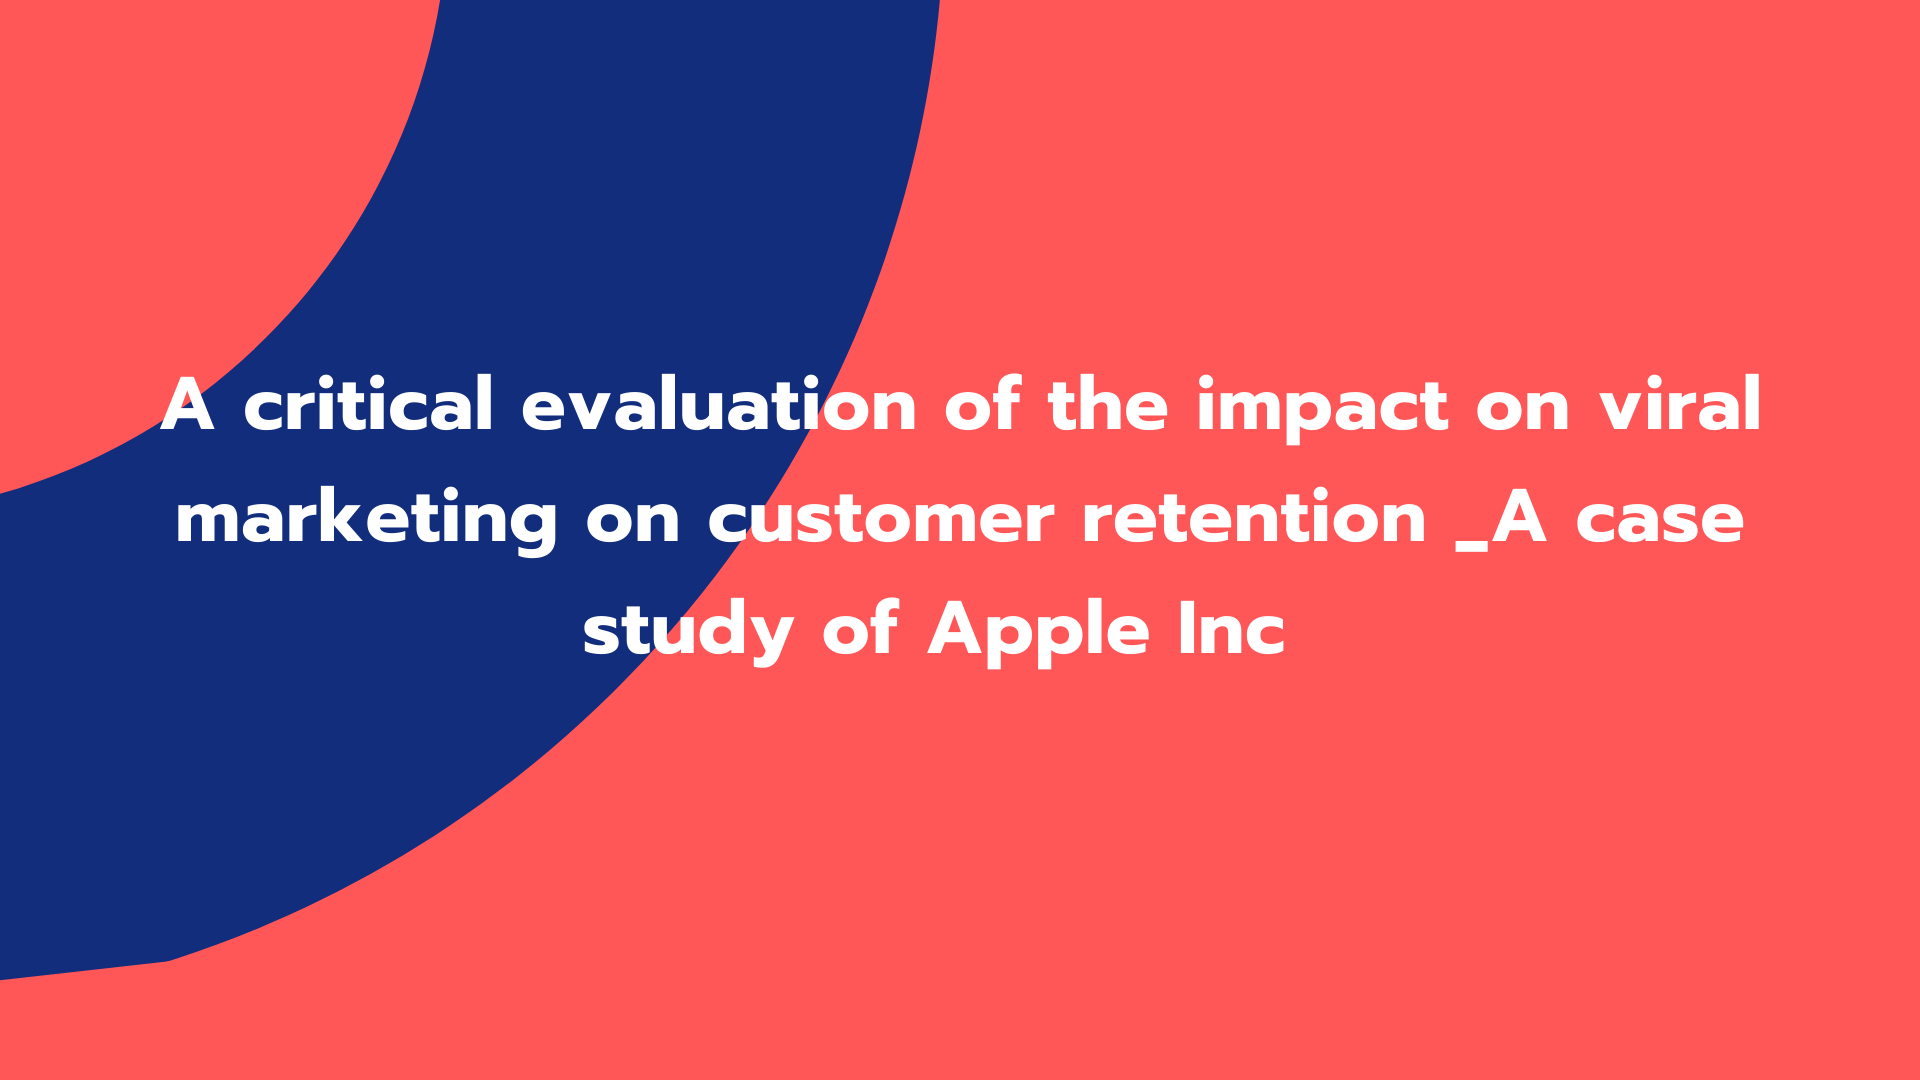 A critical evaluation of the impact on viral marketing on customer retention _A case study of Apple Inc